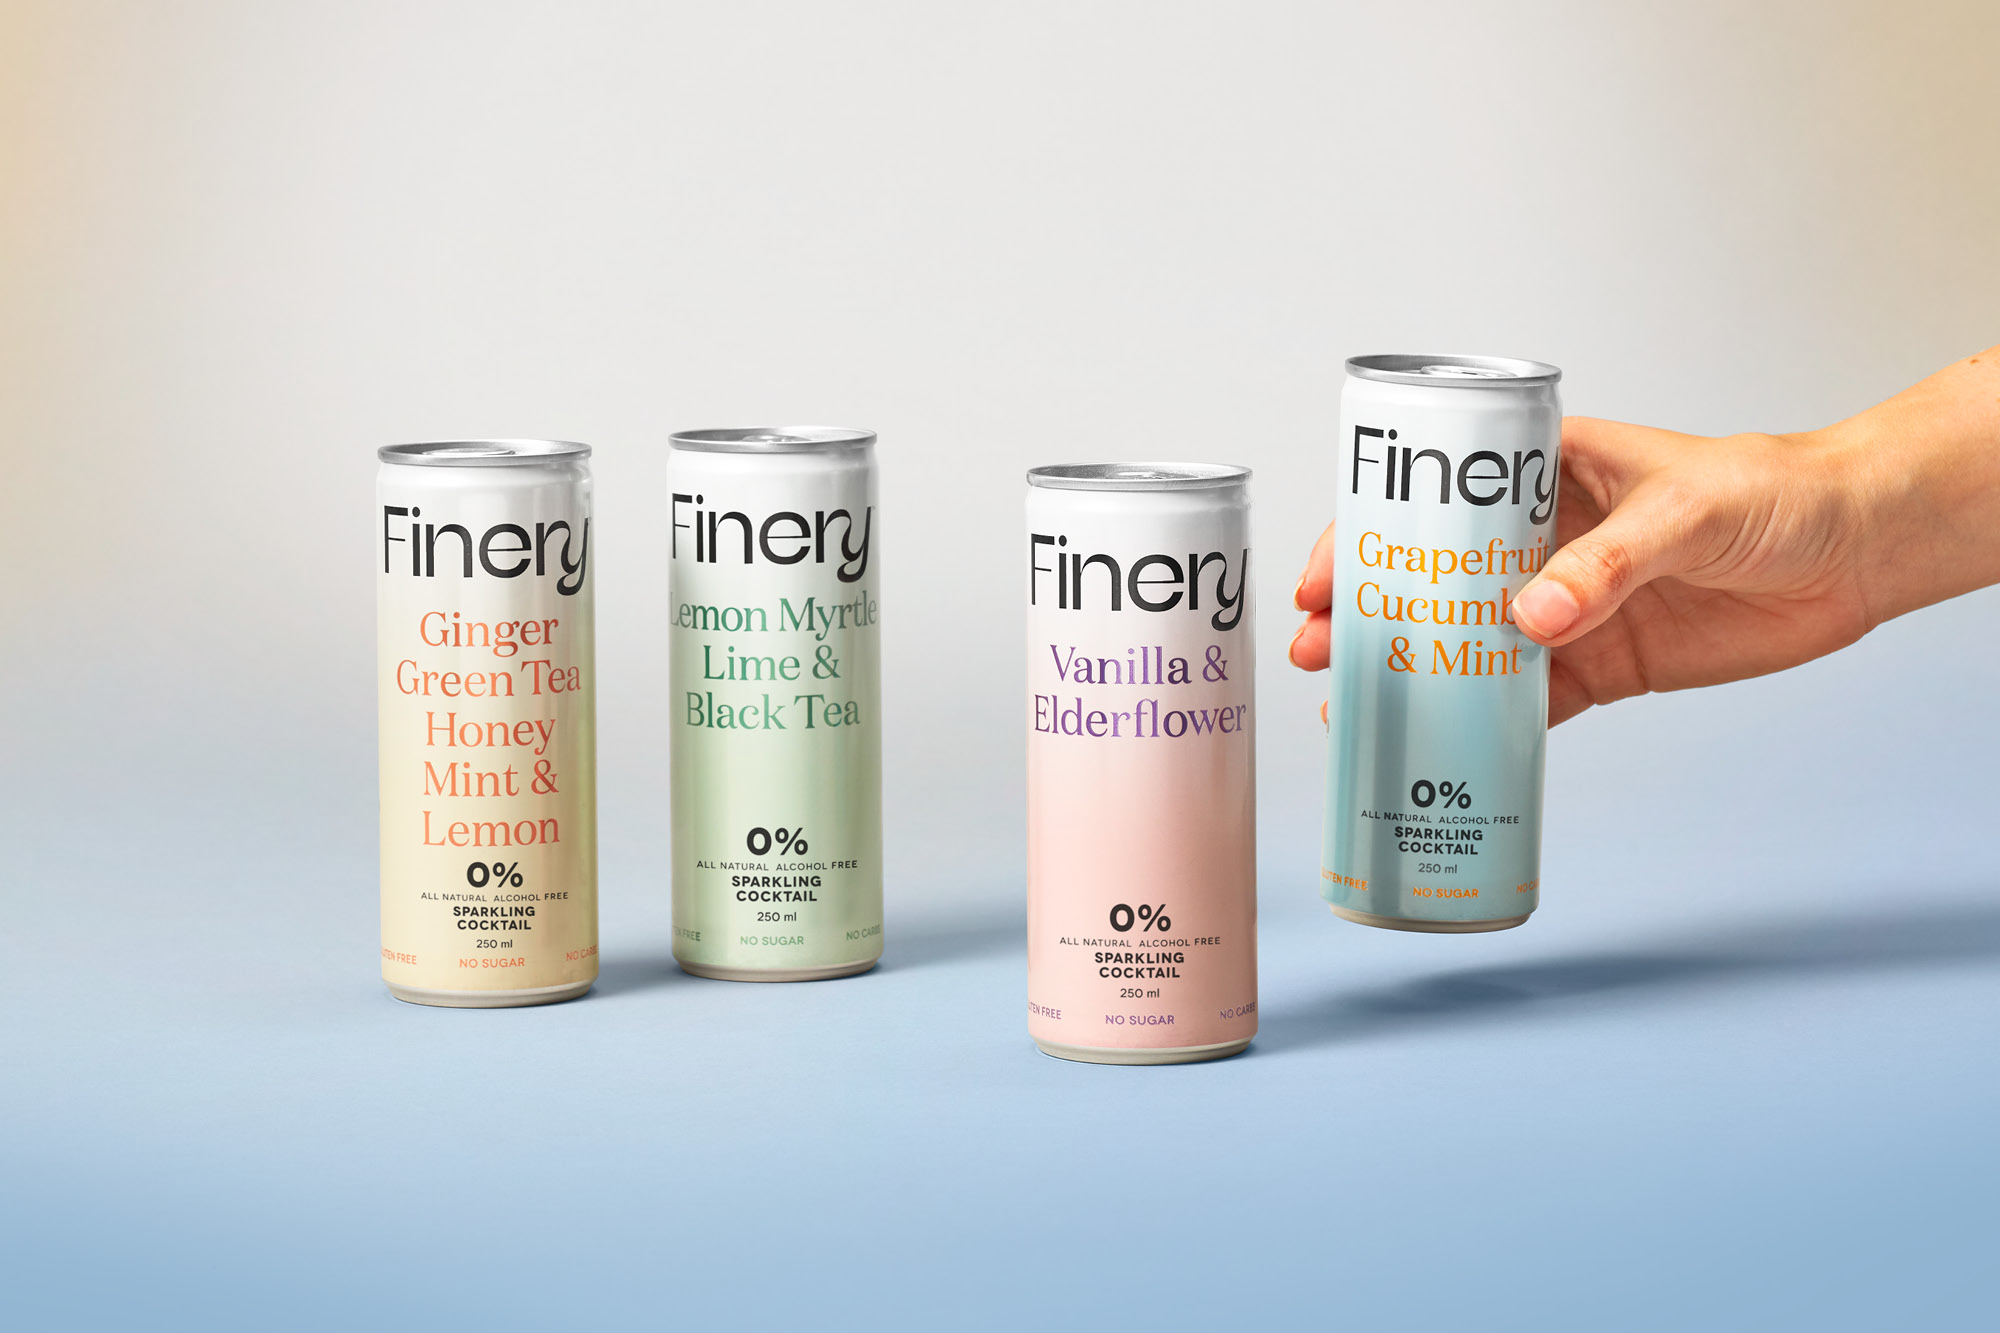 onfire design finery zero percent soda packaging 8